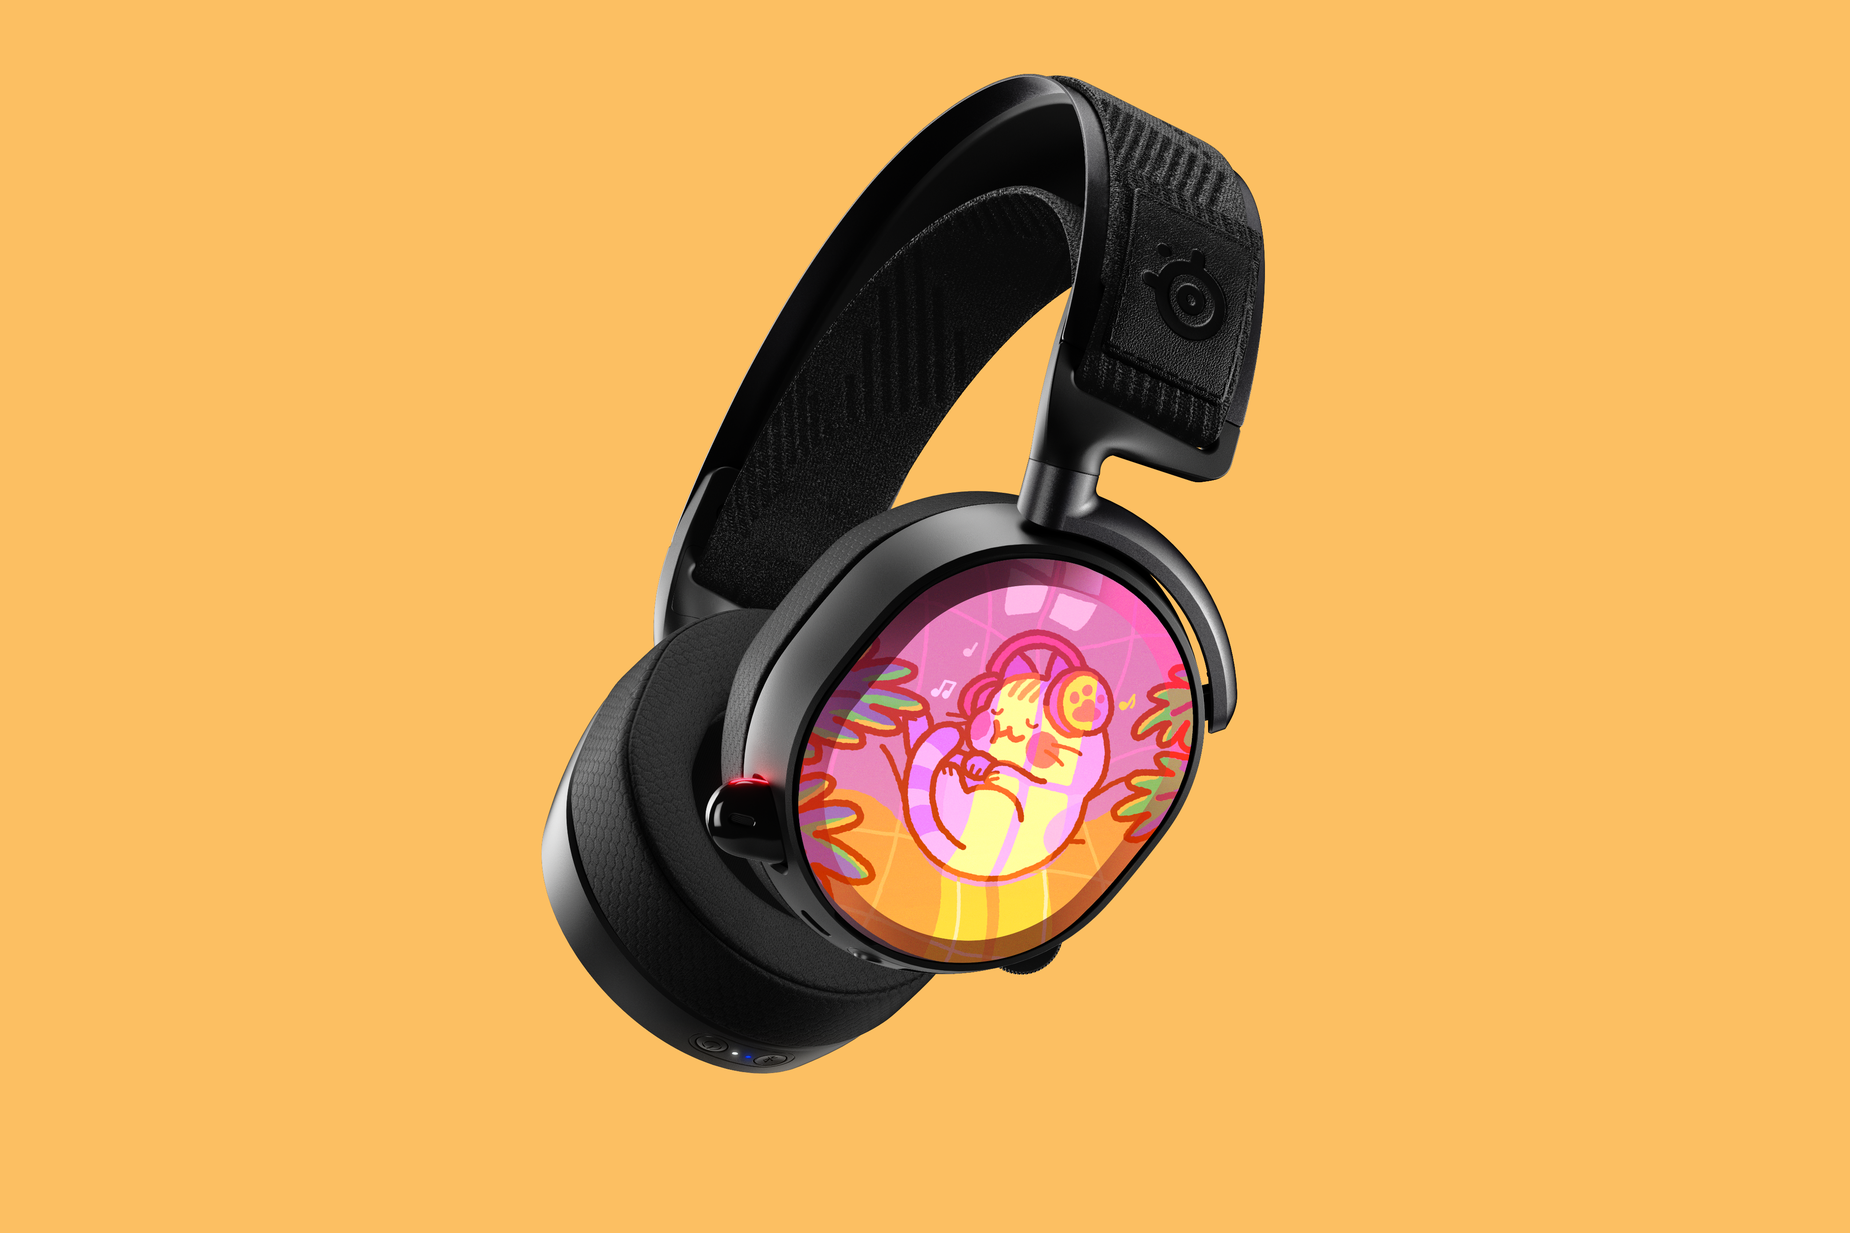 Product render of Arctis Pro with Mis0happy speaker plates adorning the side